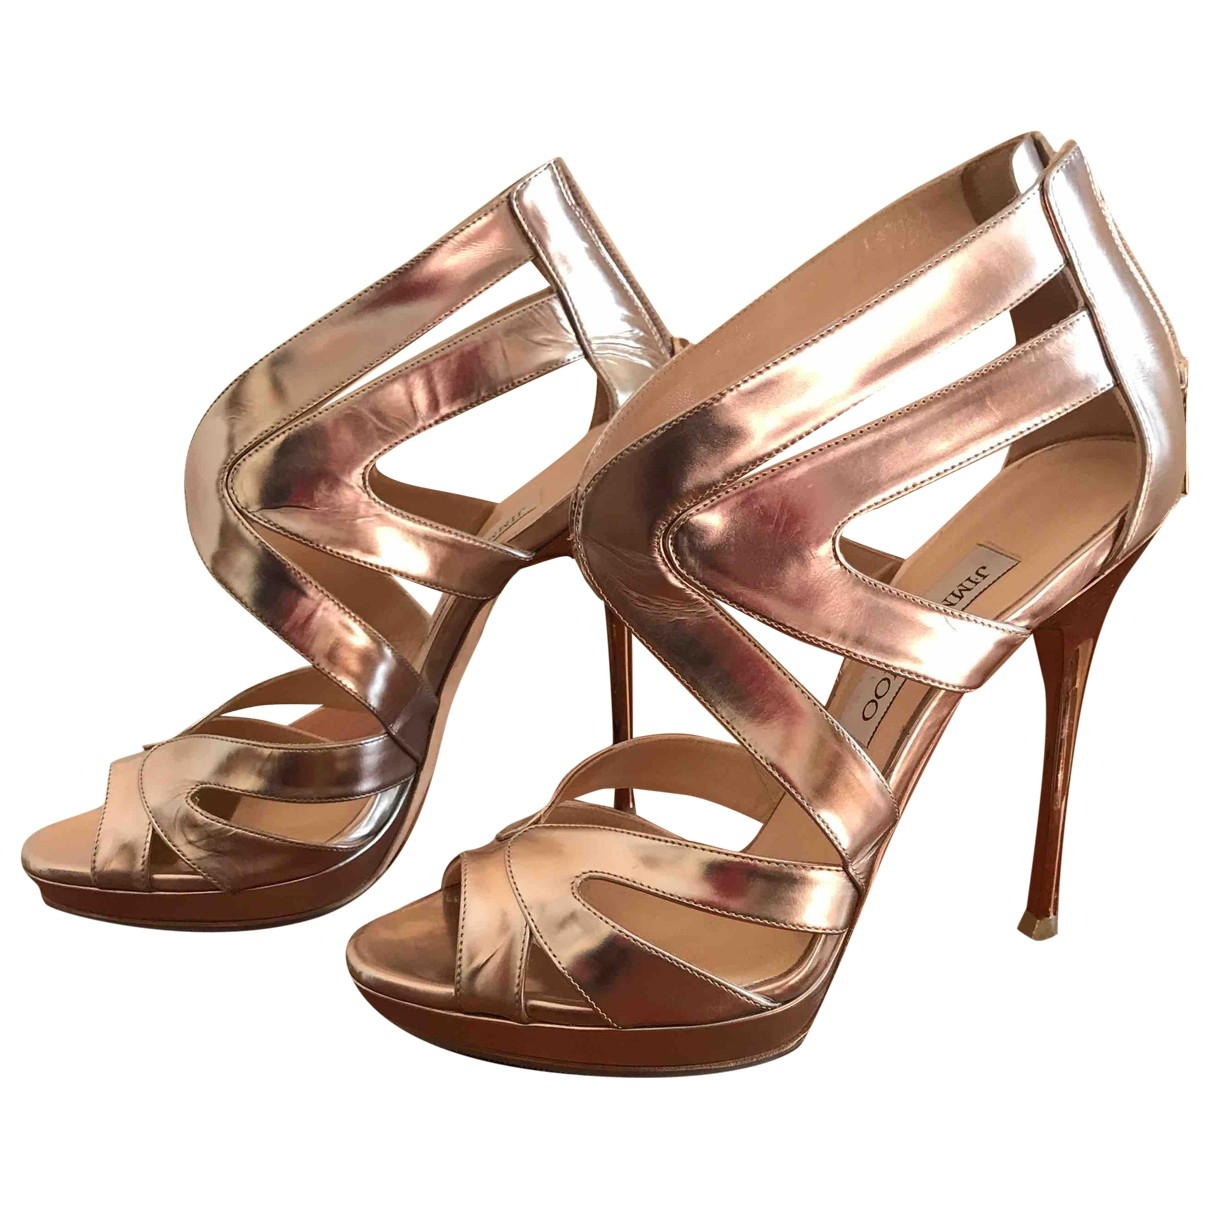 Jimmy Choo \N Gold Patent leather Sandals for Women 38 EU